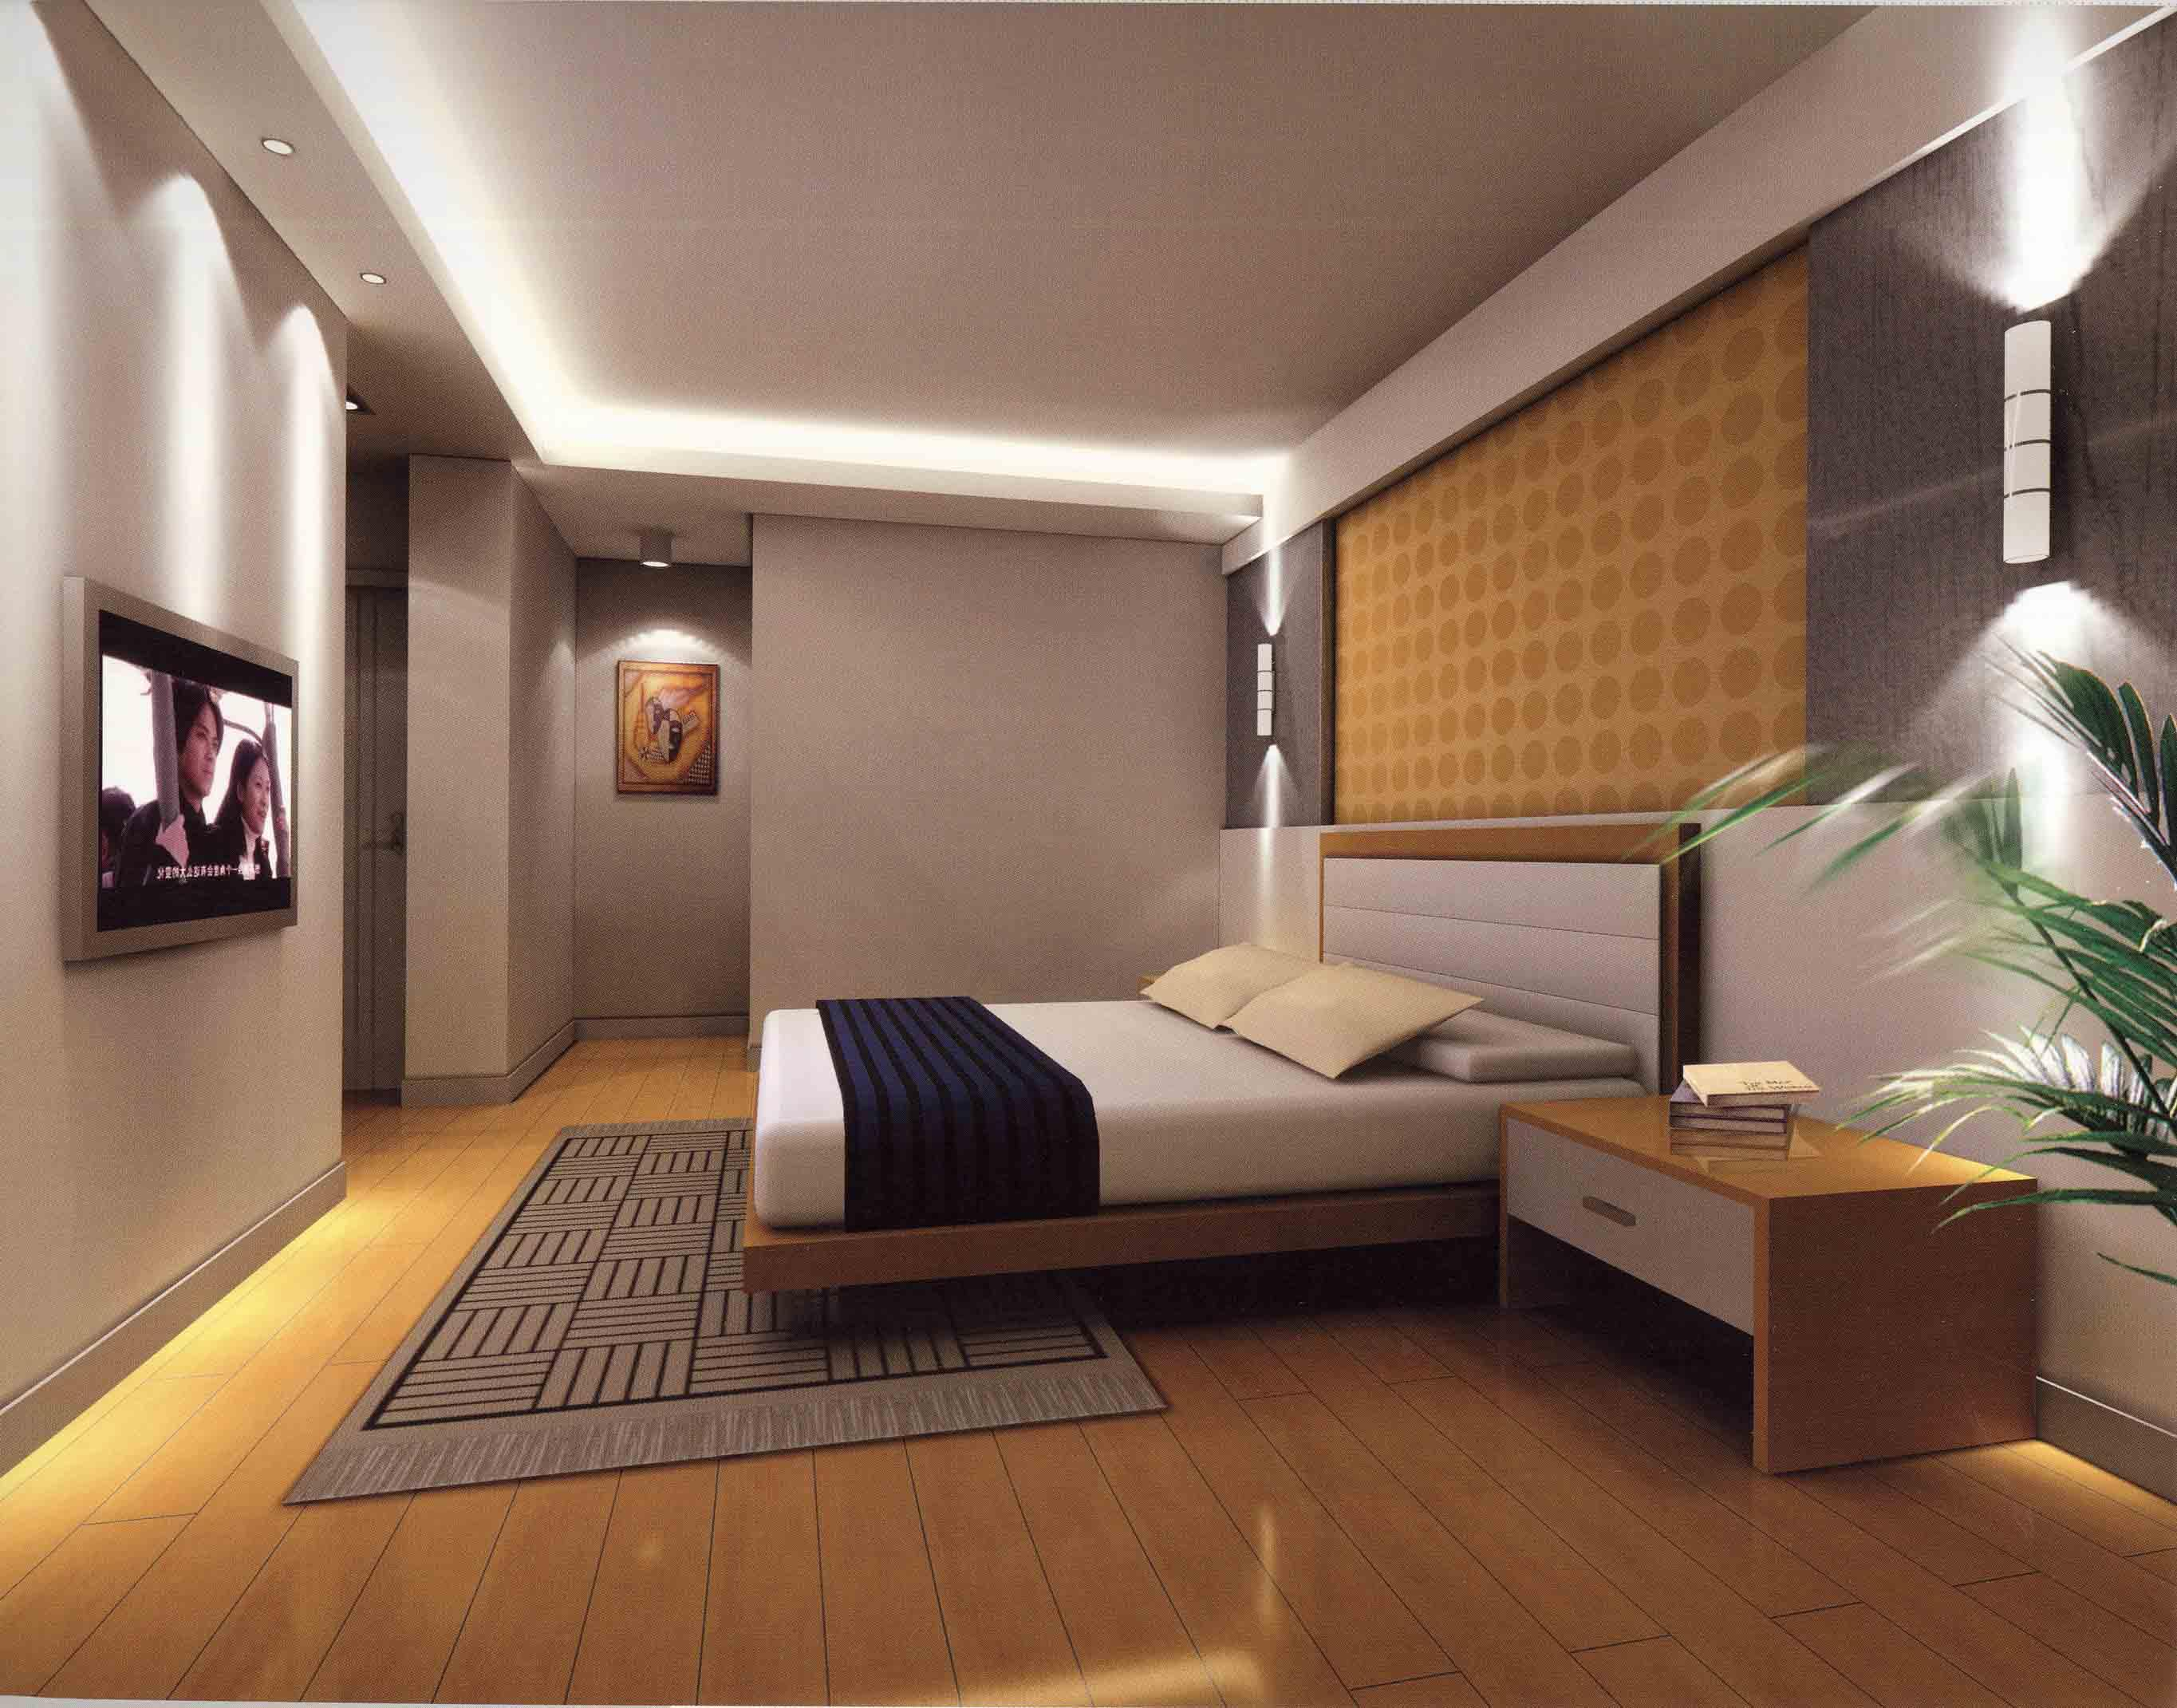 25 cool bedroom designs collection for Master bedroom designs modern